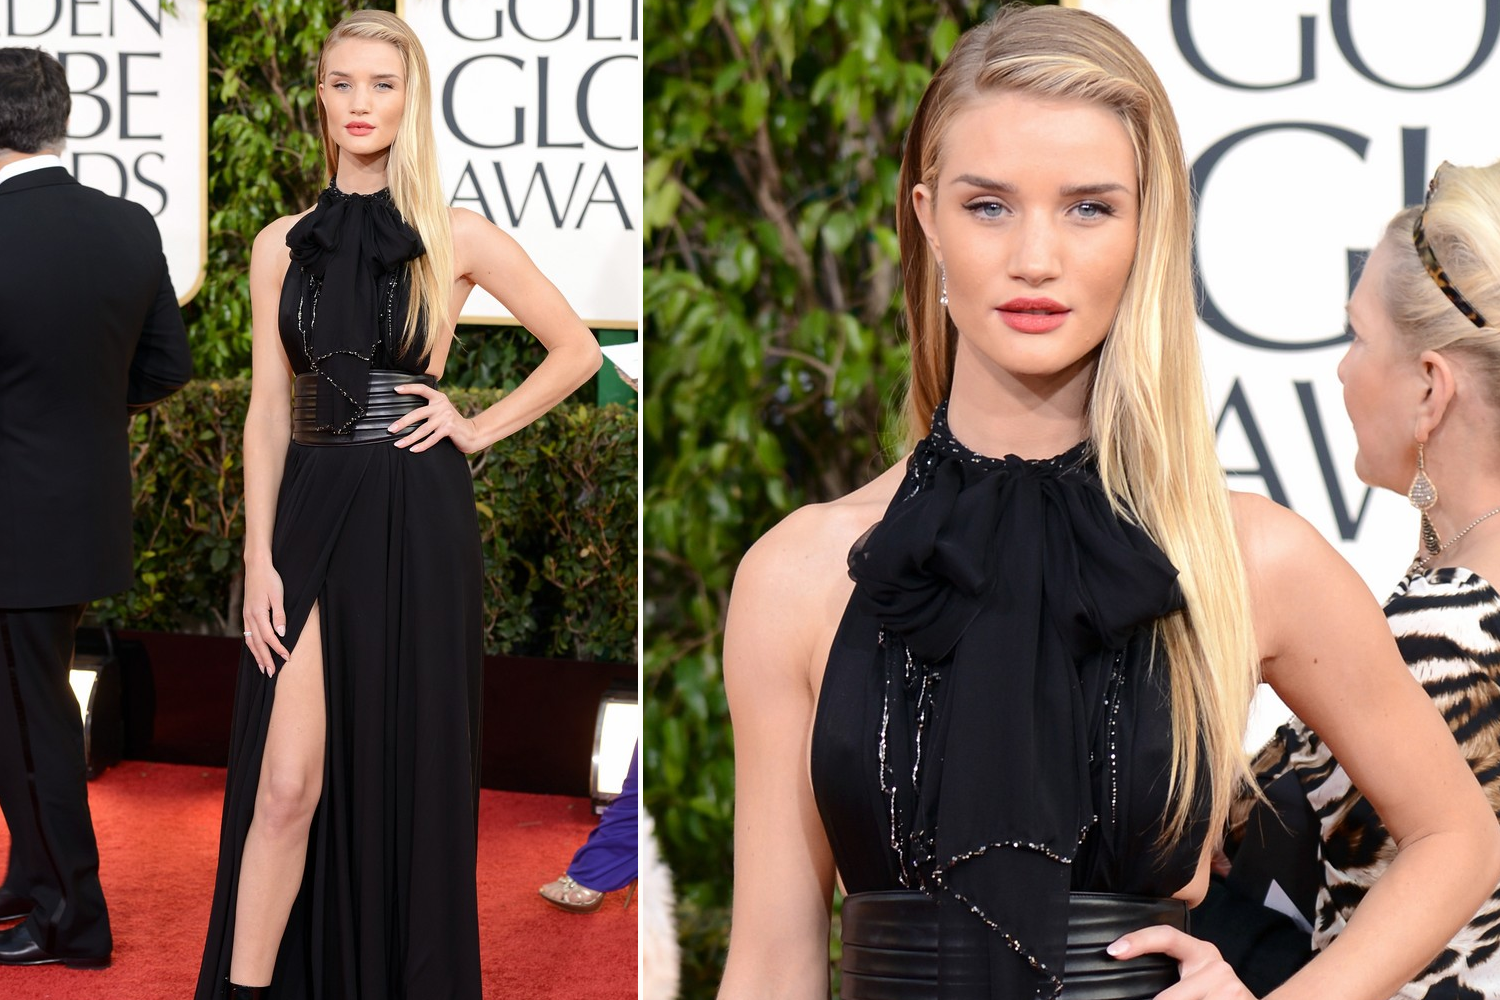 Sleek-and-straight-wedding-hair-inspiration-golden-globes-2013.original